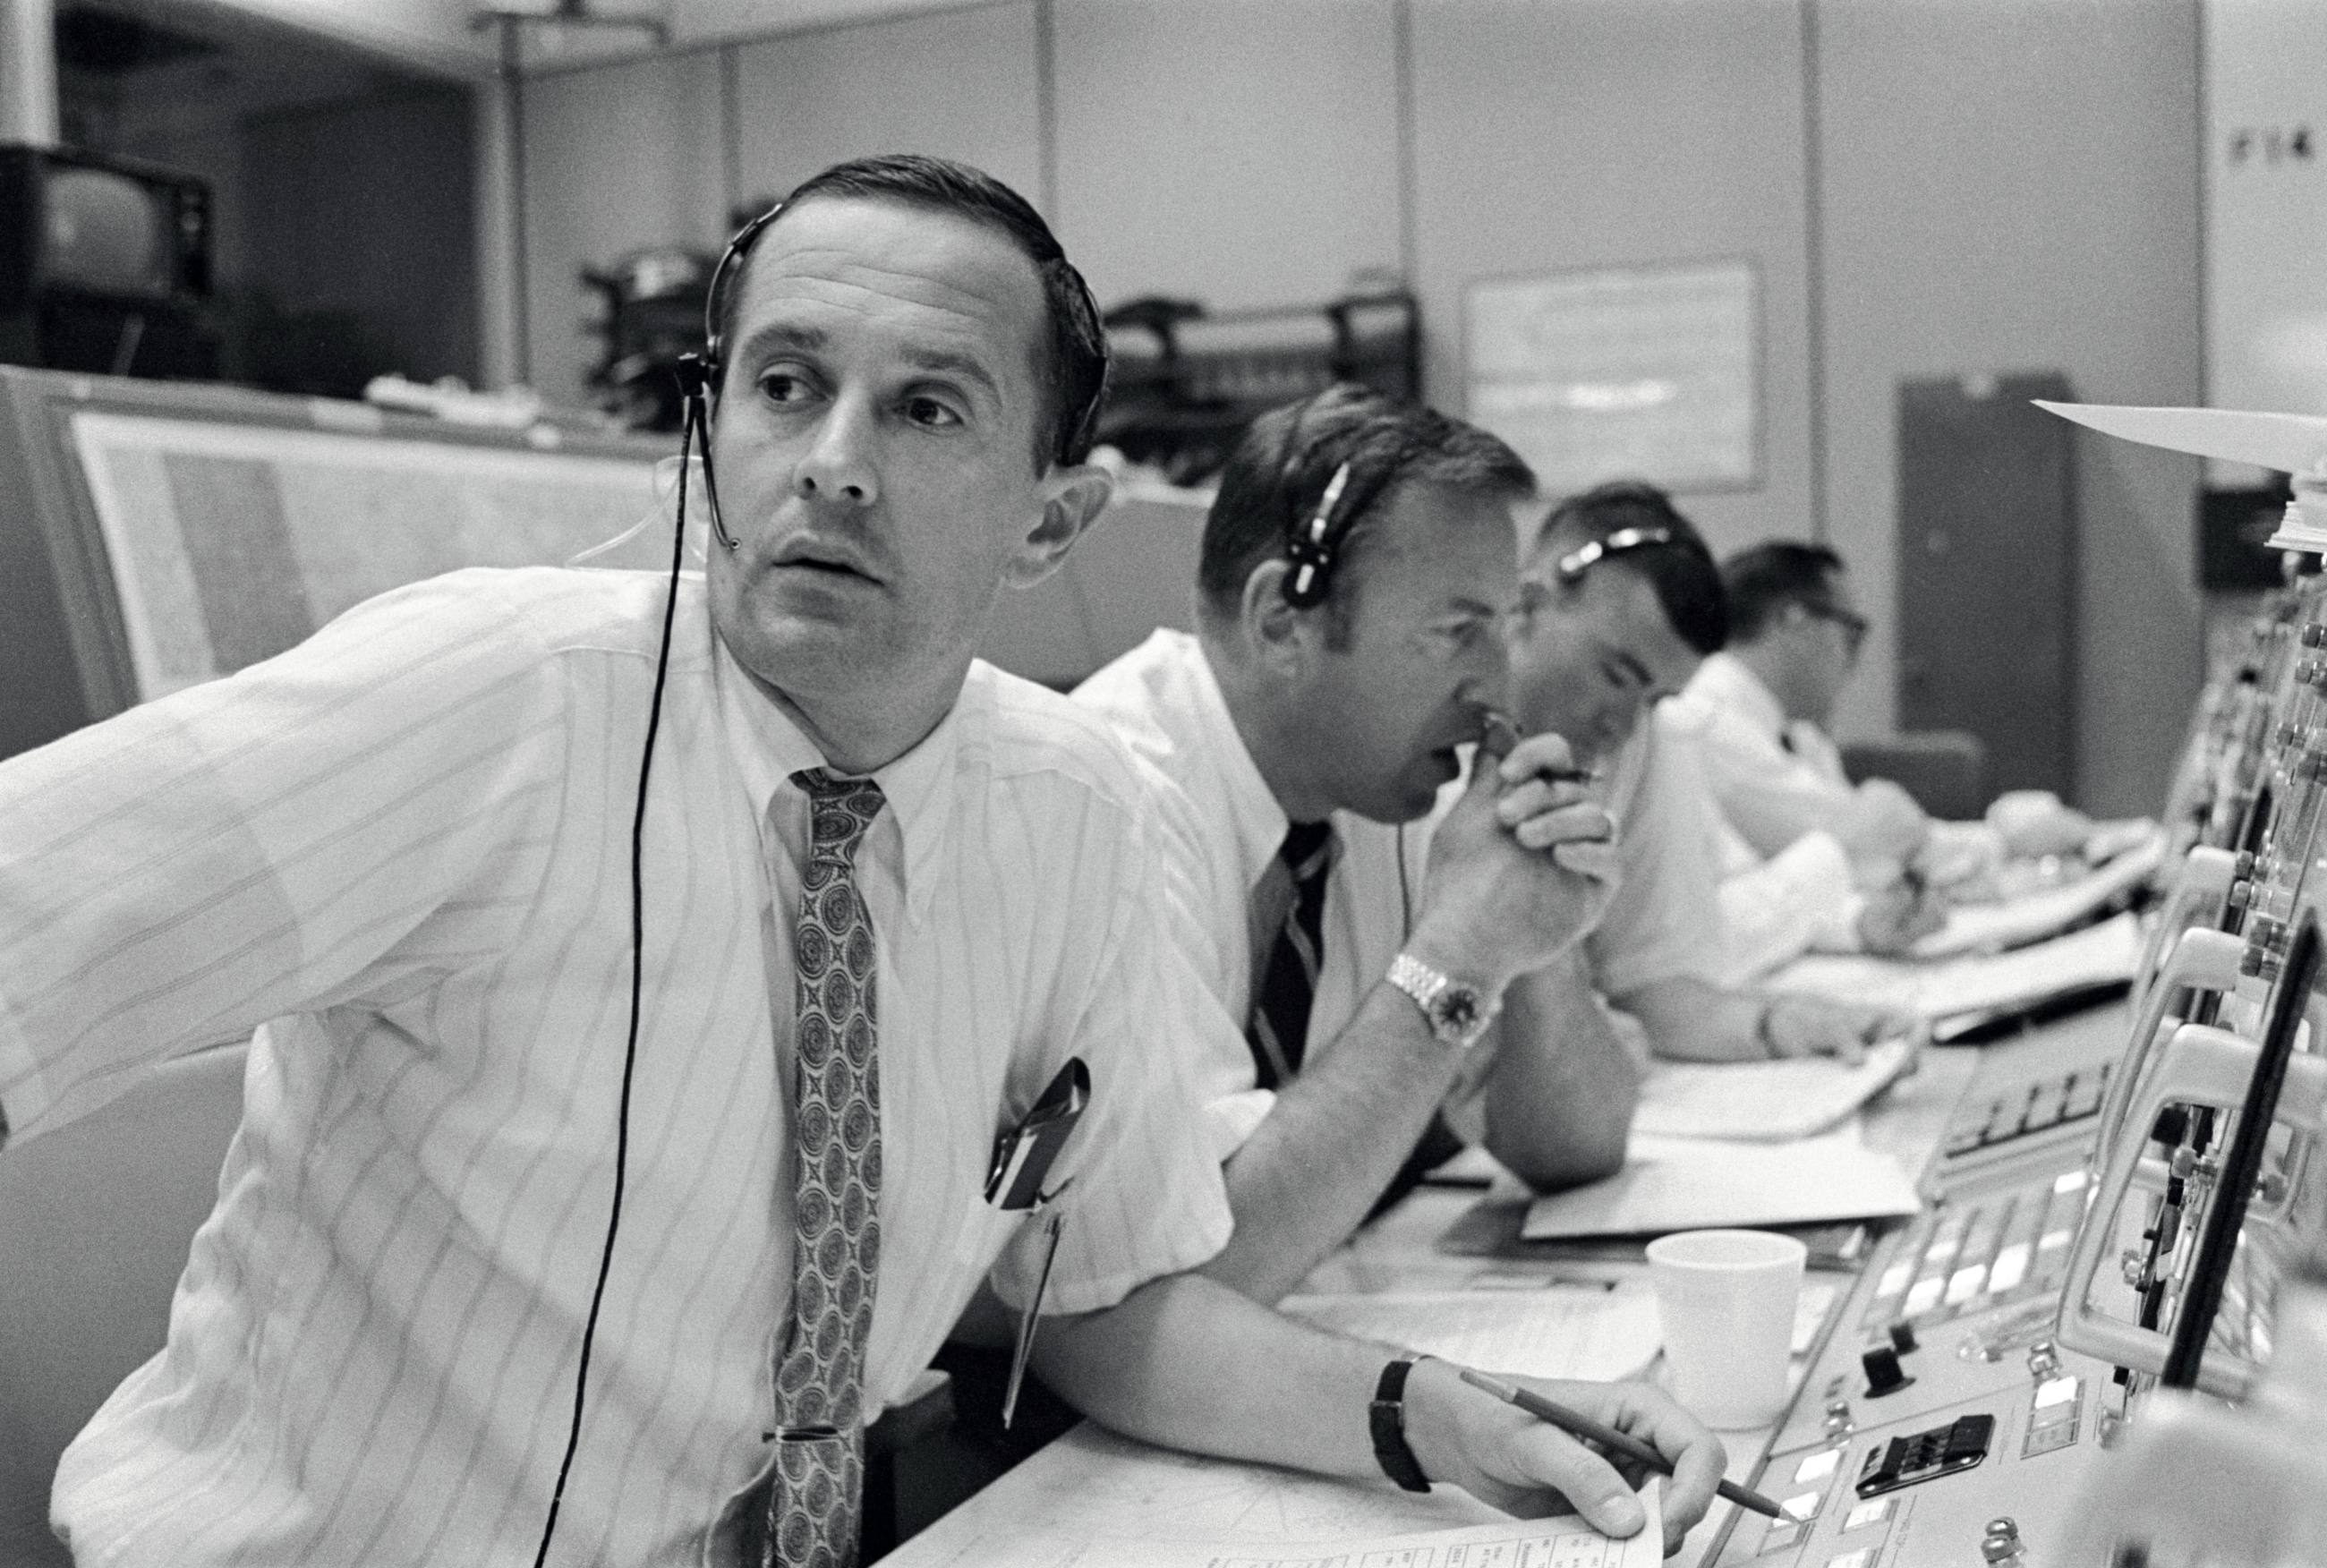 Apollo 11 spacecraft communicators at Mission Control on July 20, 1969